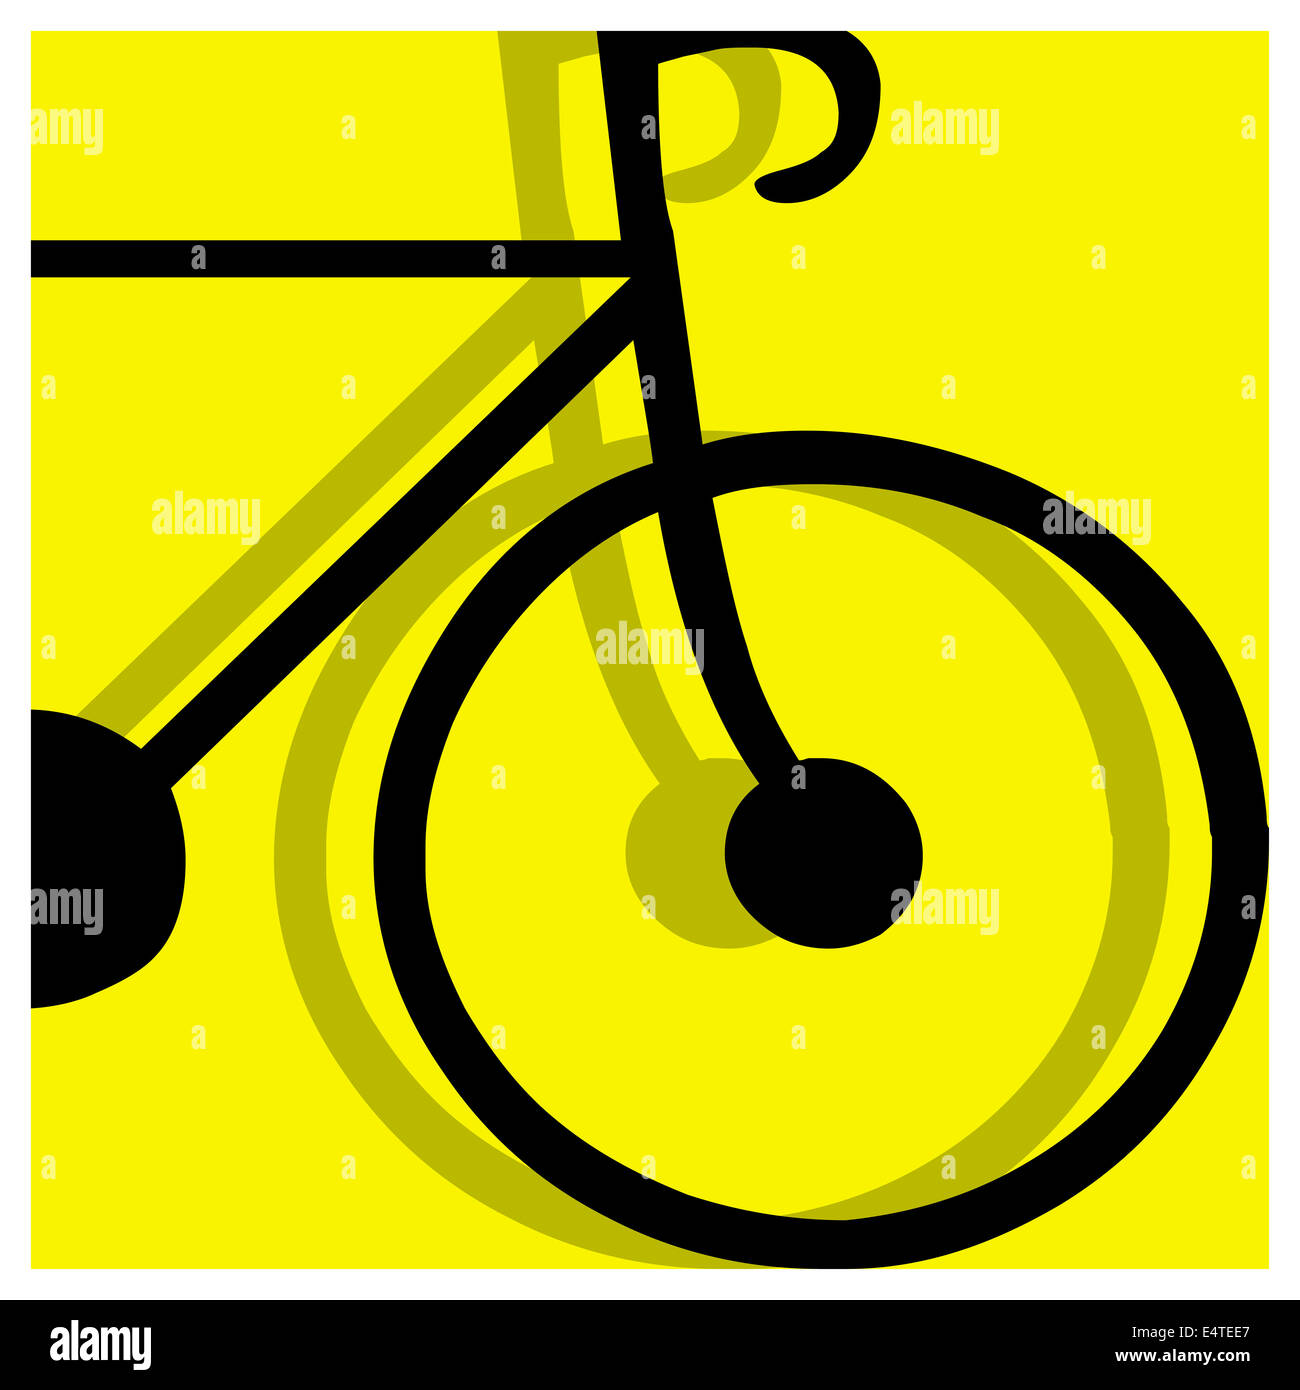 bicycling pictogram yellow - Stock Image